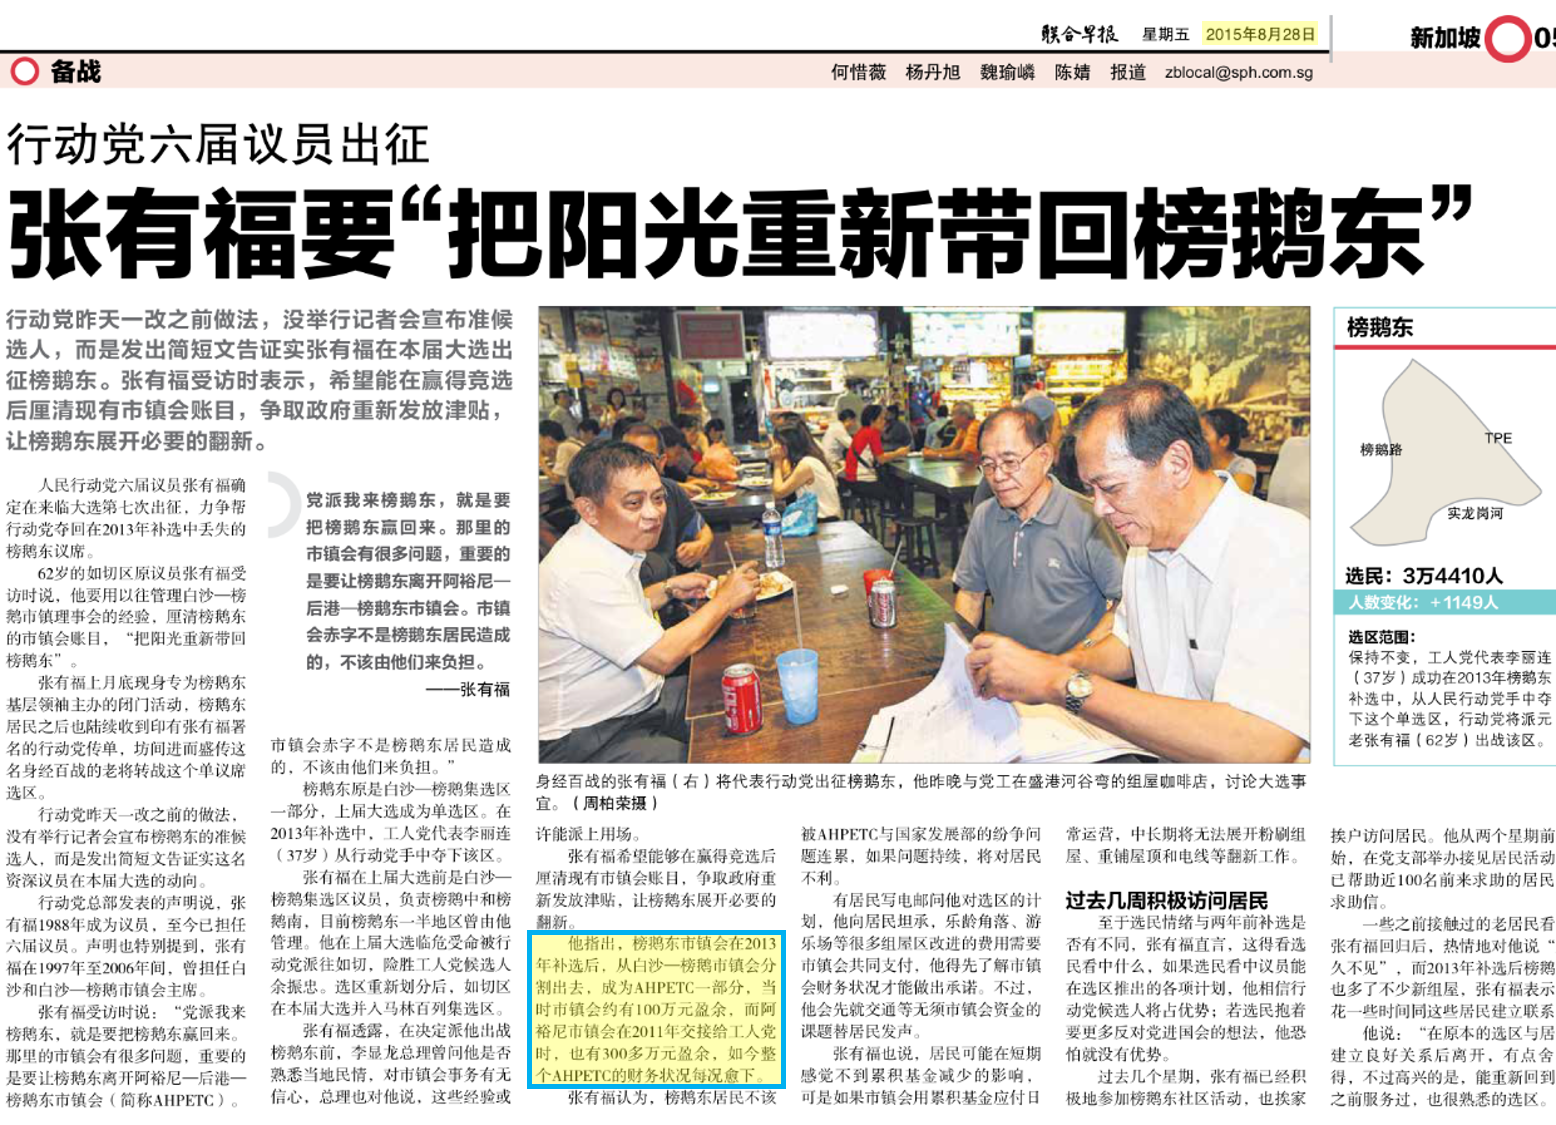 Response to Charles Chong's Press Release on 9 September 2015 on Punggol East SMC'S Funds